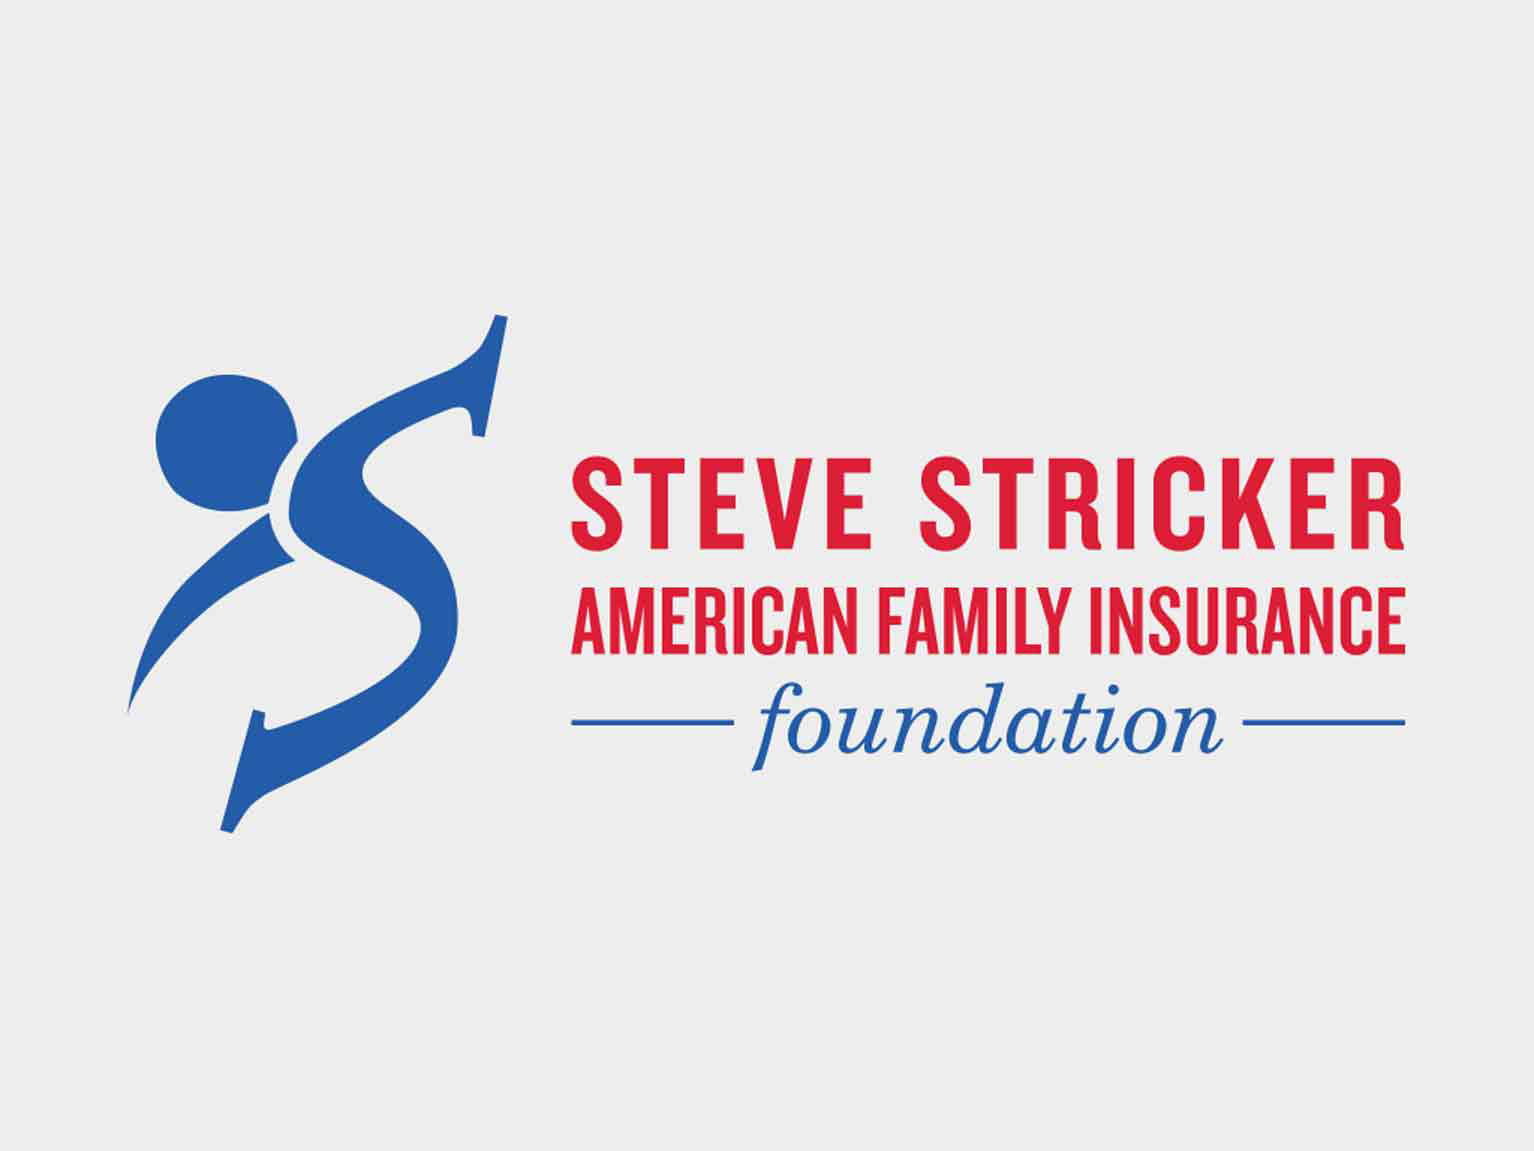 Steve Stricker Foundation